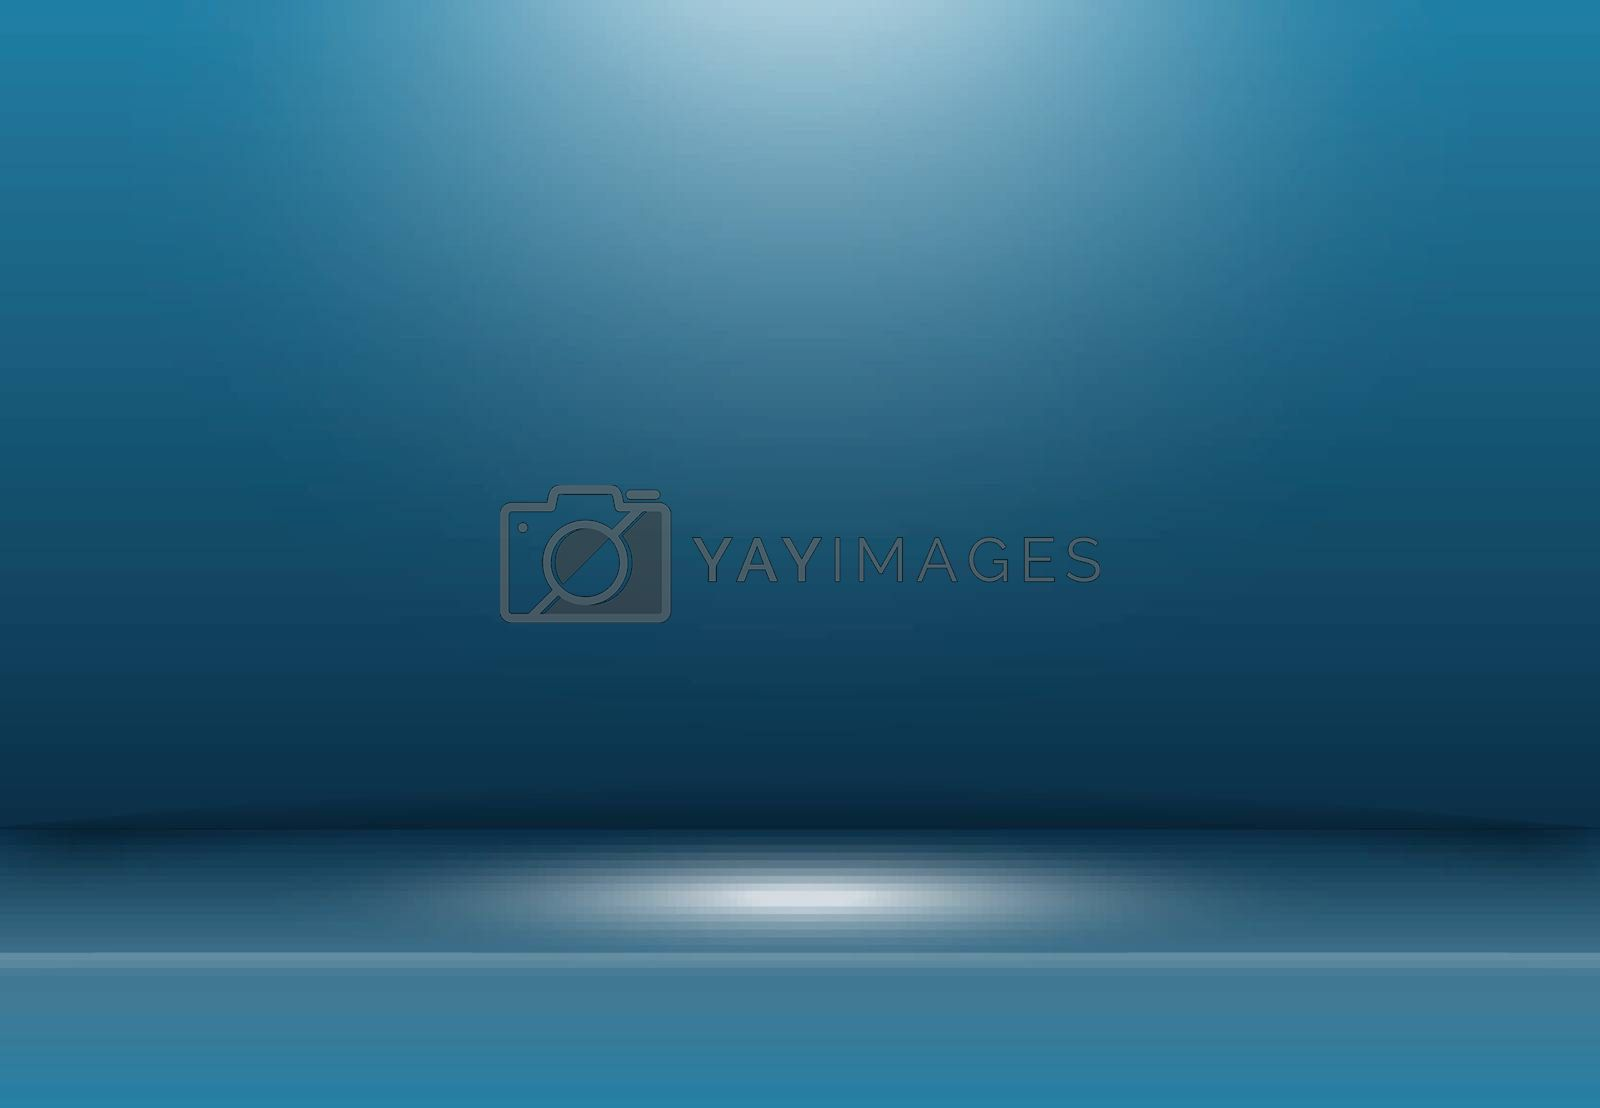 Abstract dark blue studio background with lighting on stage. Vector illustration